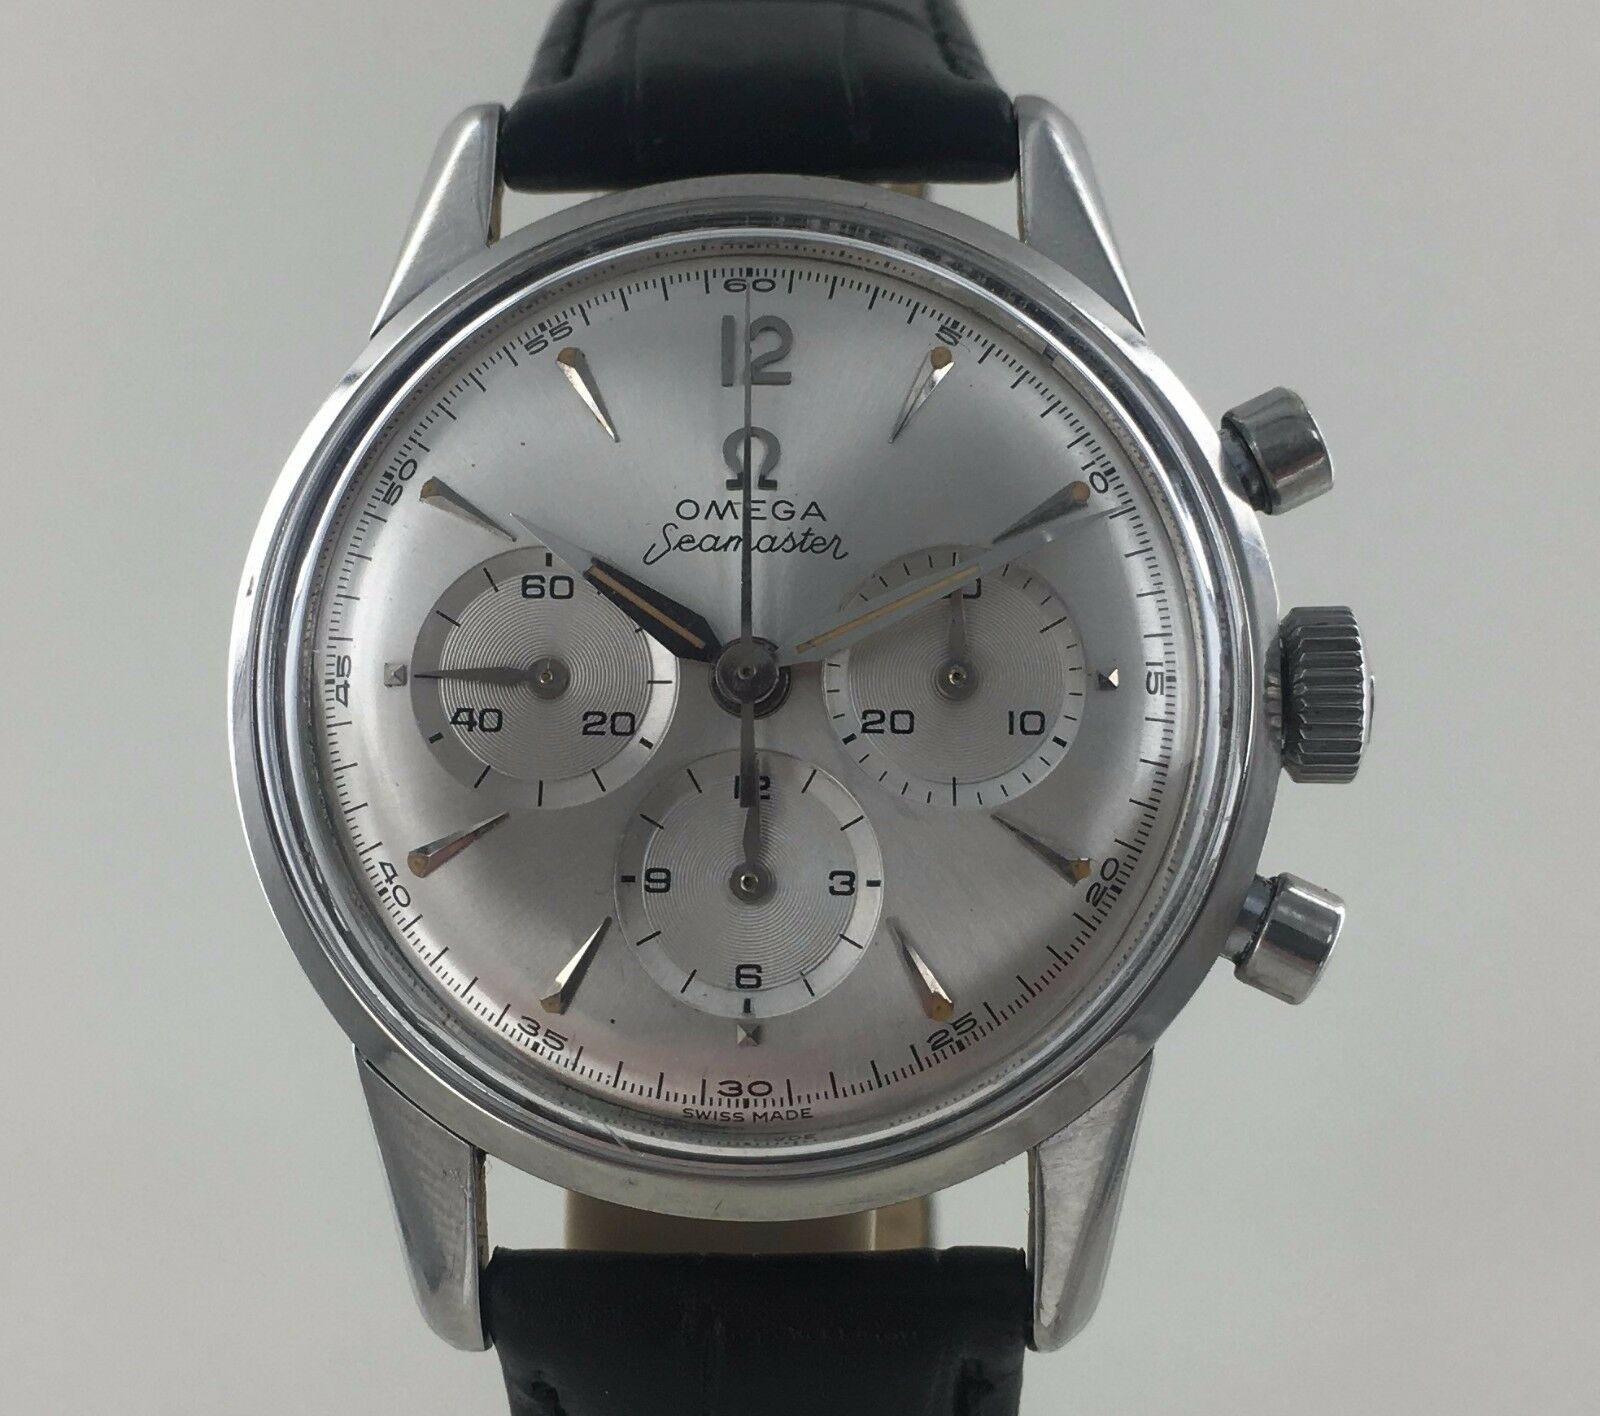 VINTAGE 1961 OMEGA 321 SEAMASTER CHRONOGRAPH REF 14364 - watch picture 1